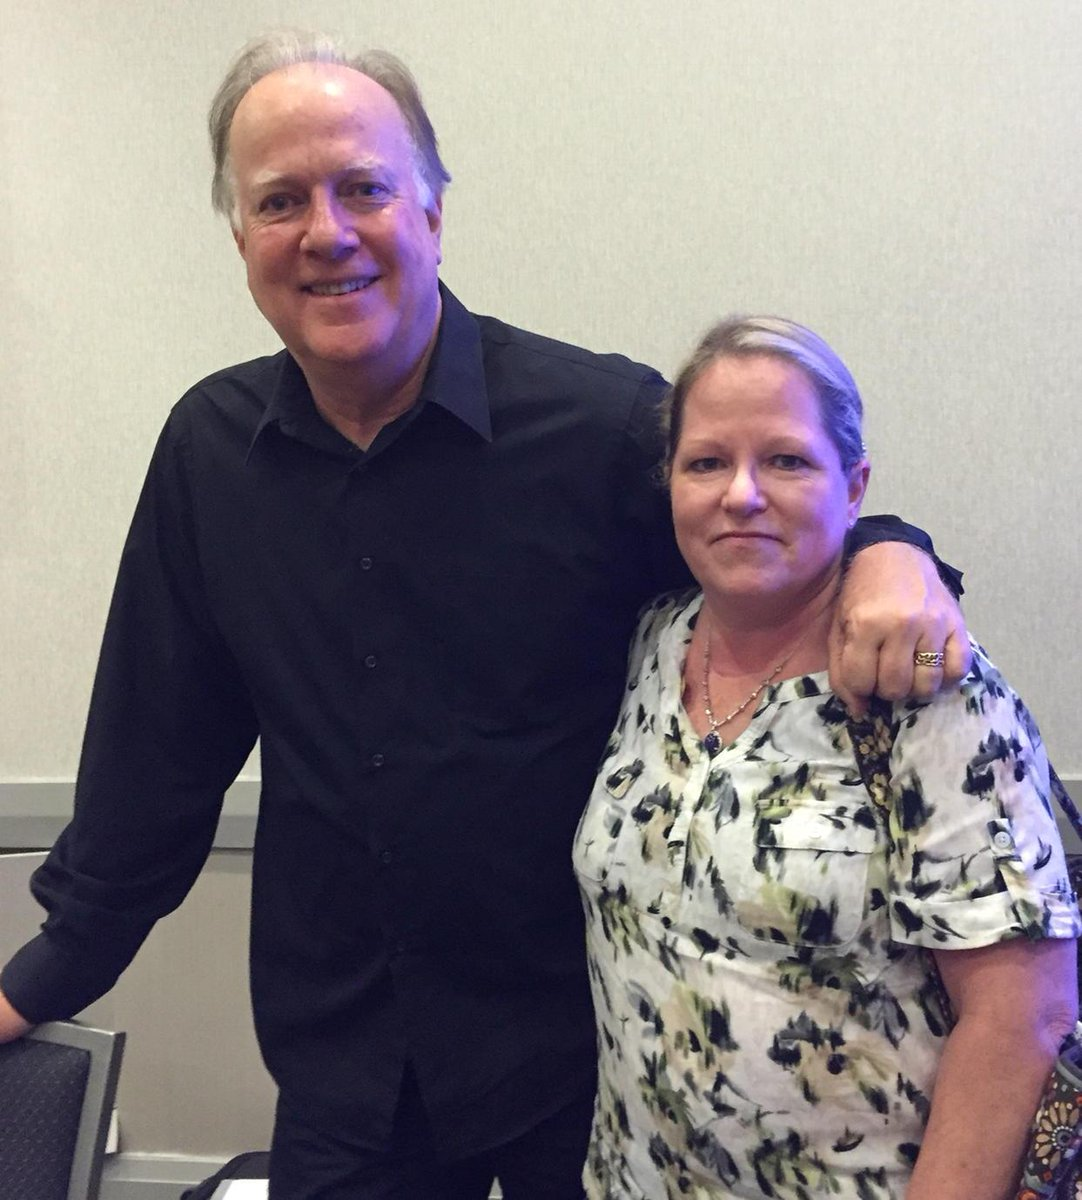 With awesome author & writing instructor @jamesscottbell @SINCnational workshop #SinCatB #bcon2015 @Bouchercon http://t.co/MEIOYEfW1o